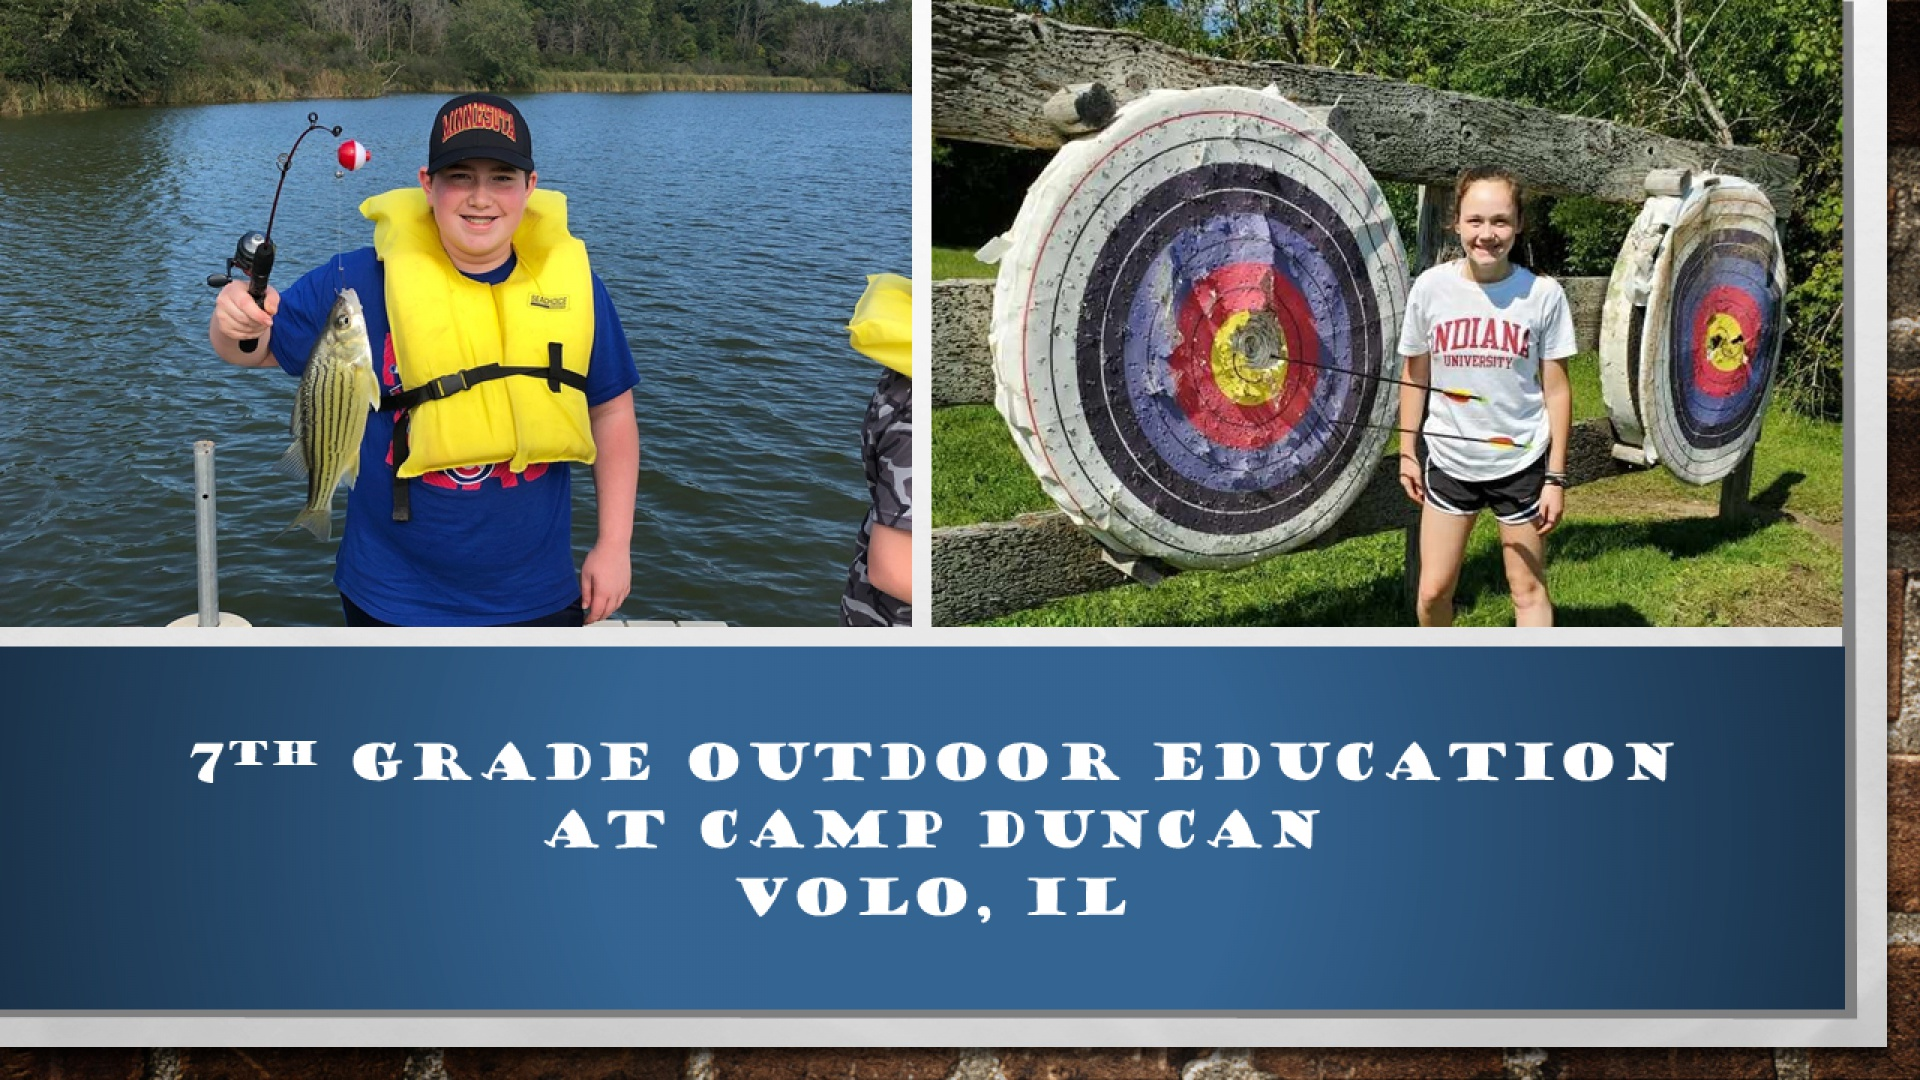 7th Grade Outdoor Education